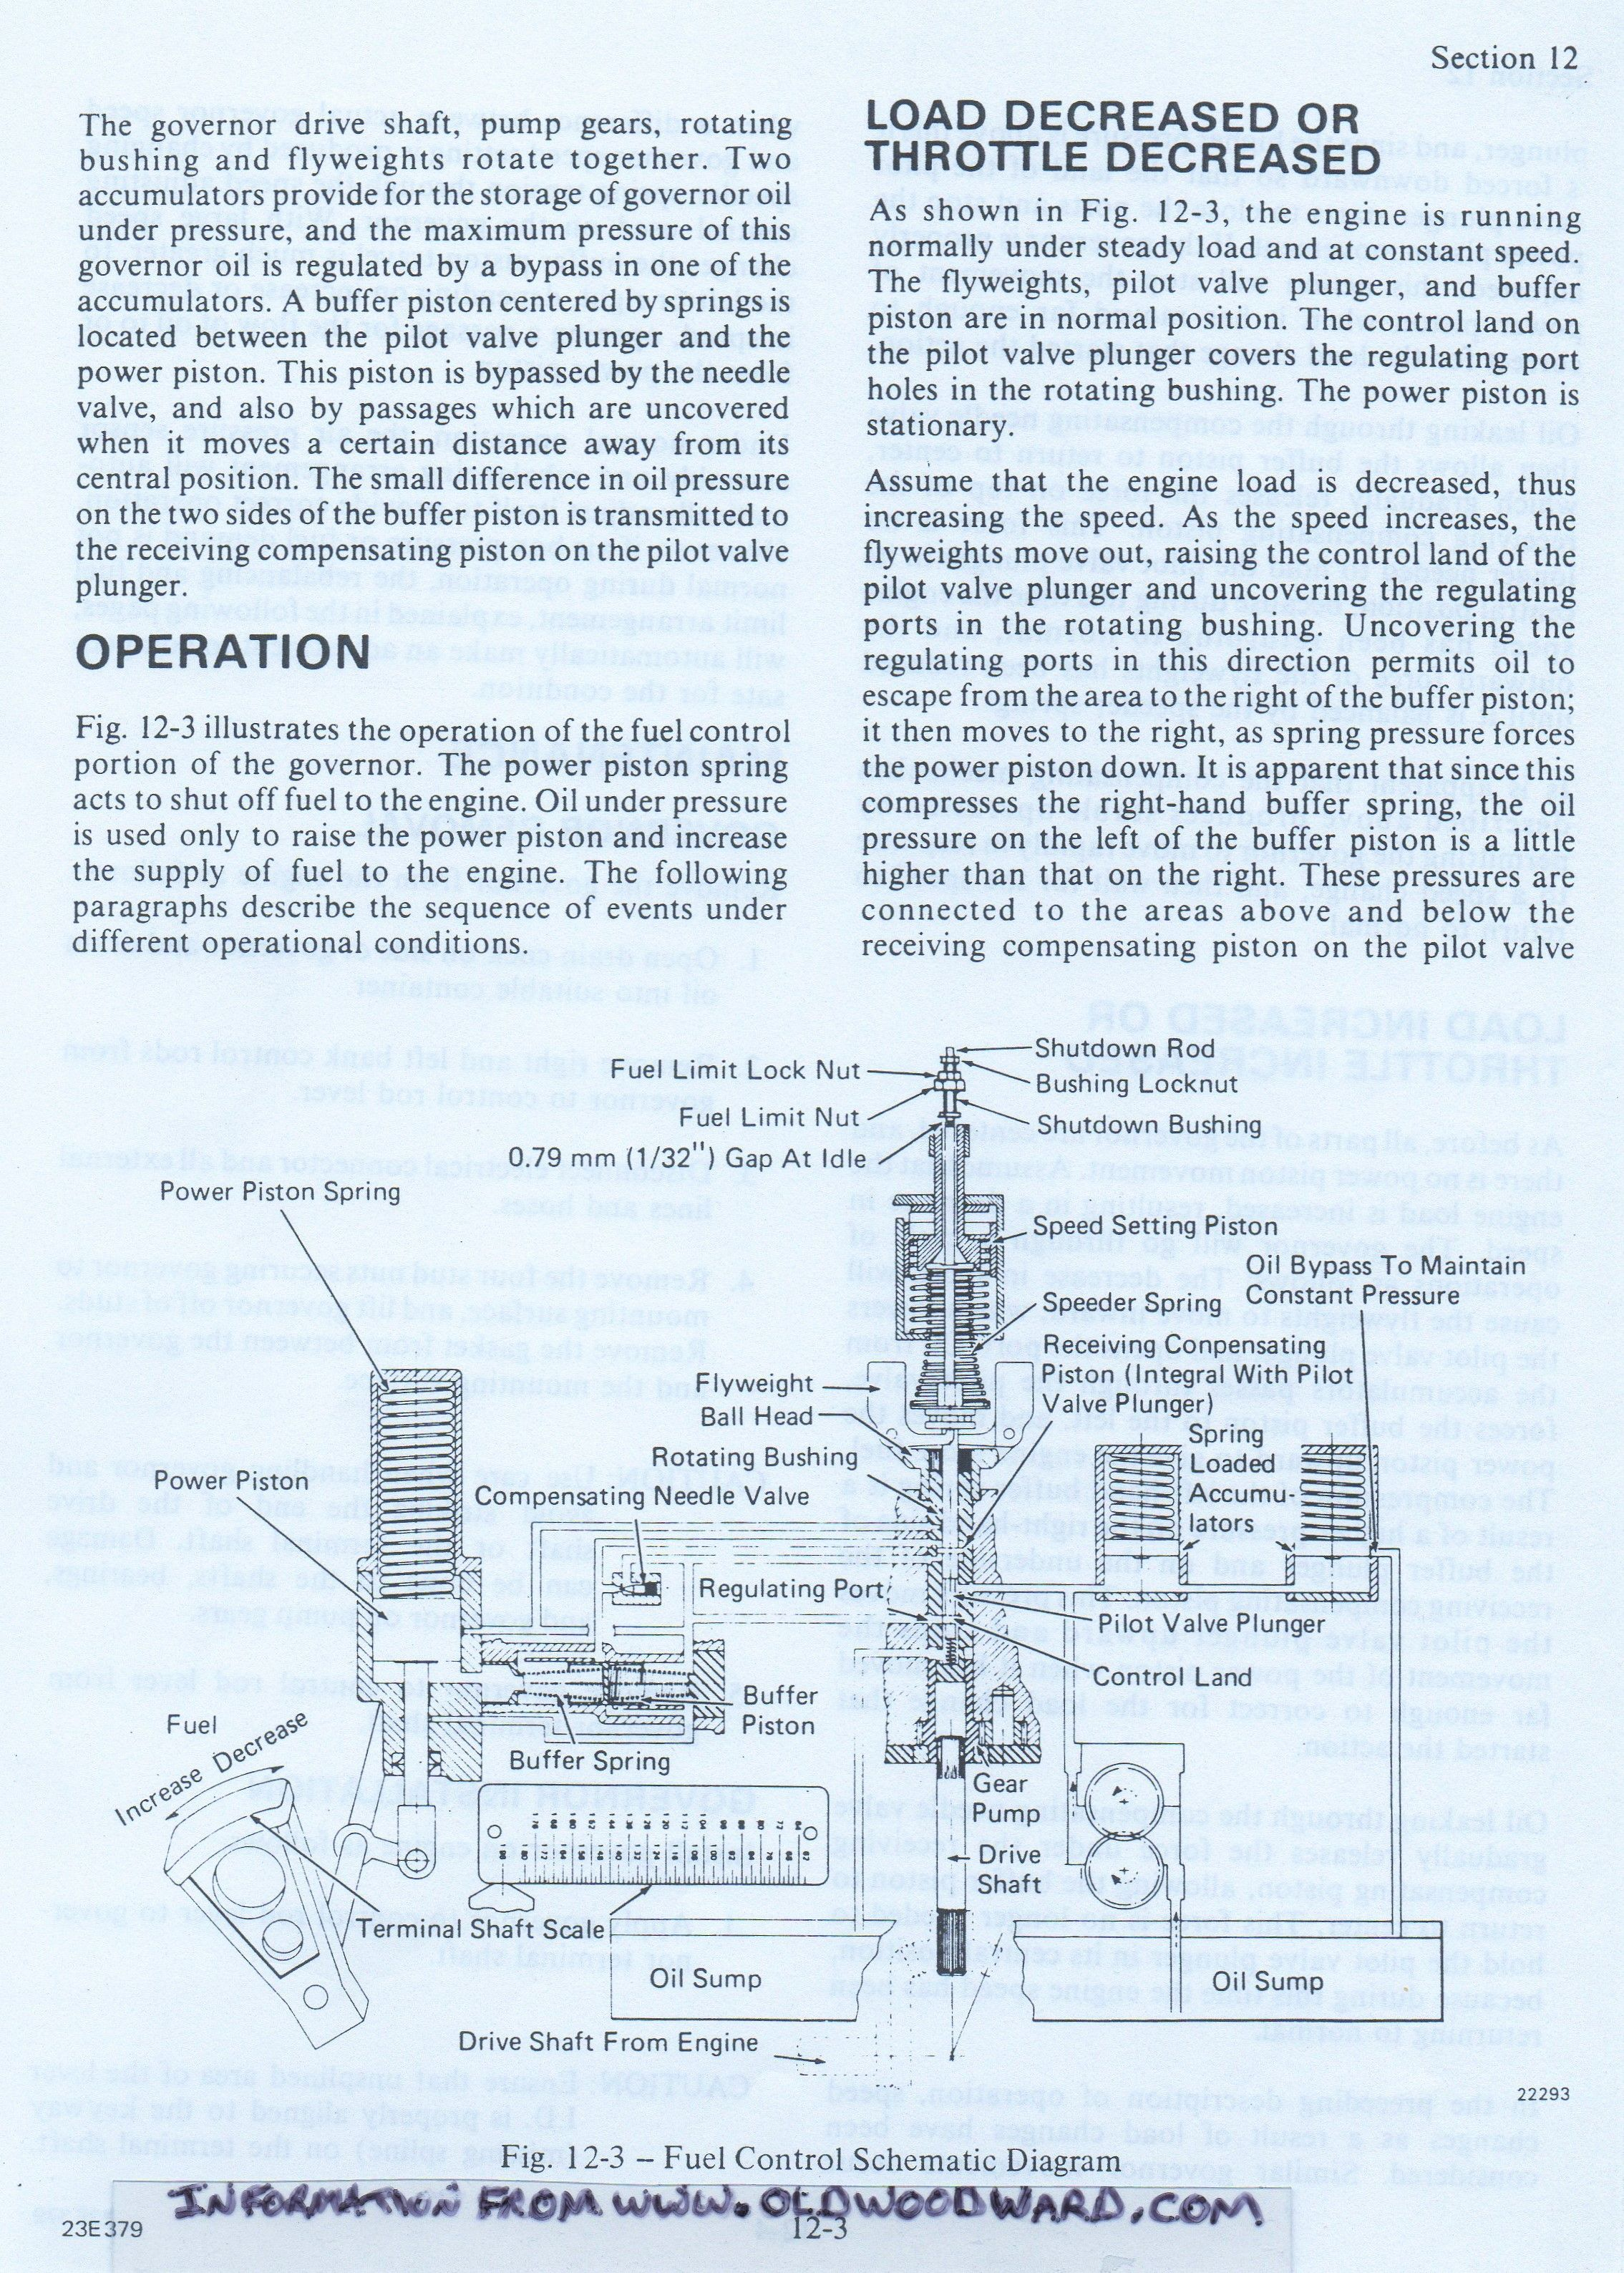 medium resolution of schematic drawing woodward governor electric locomotive diesel engine engineering